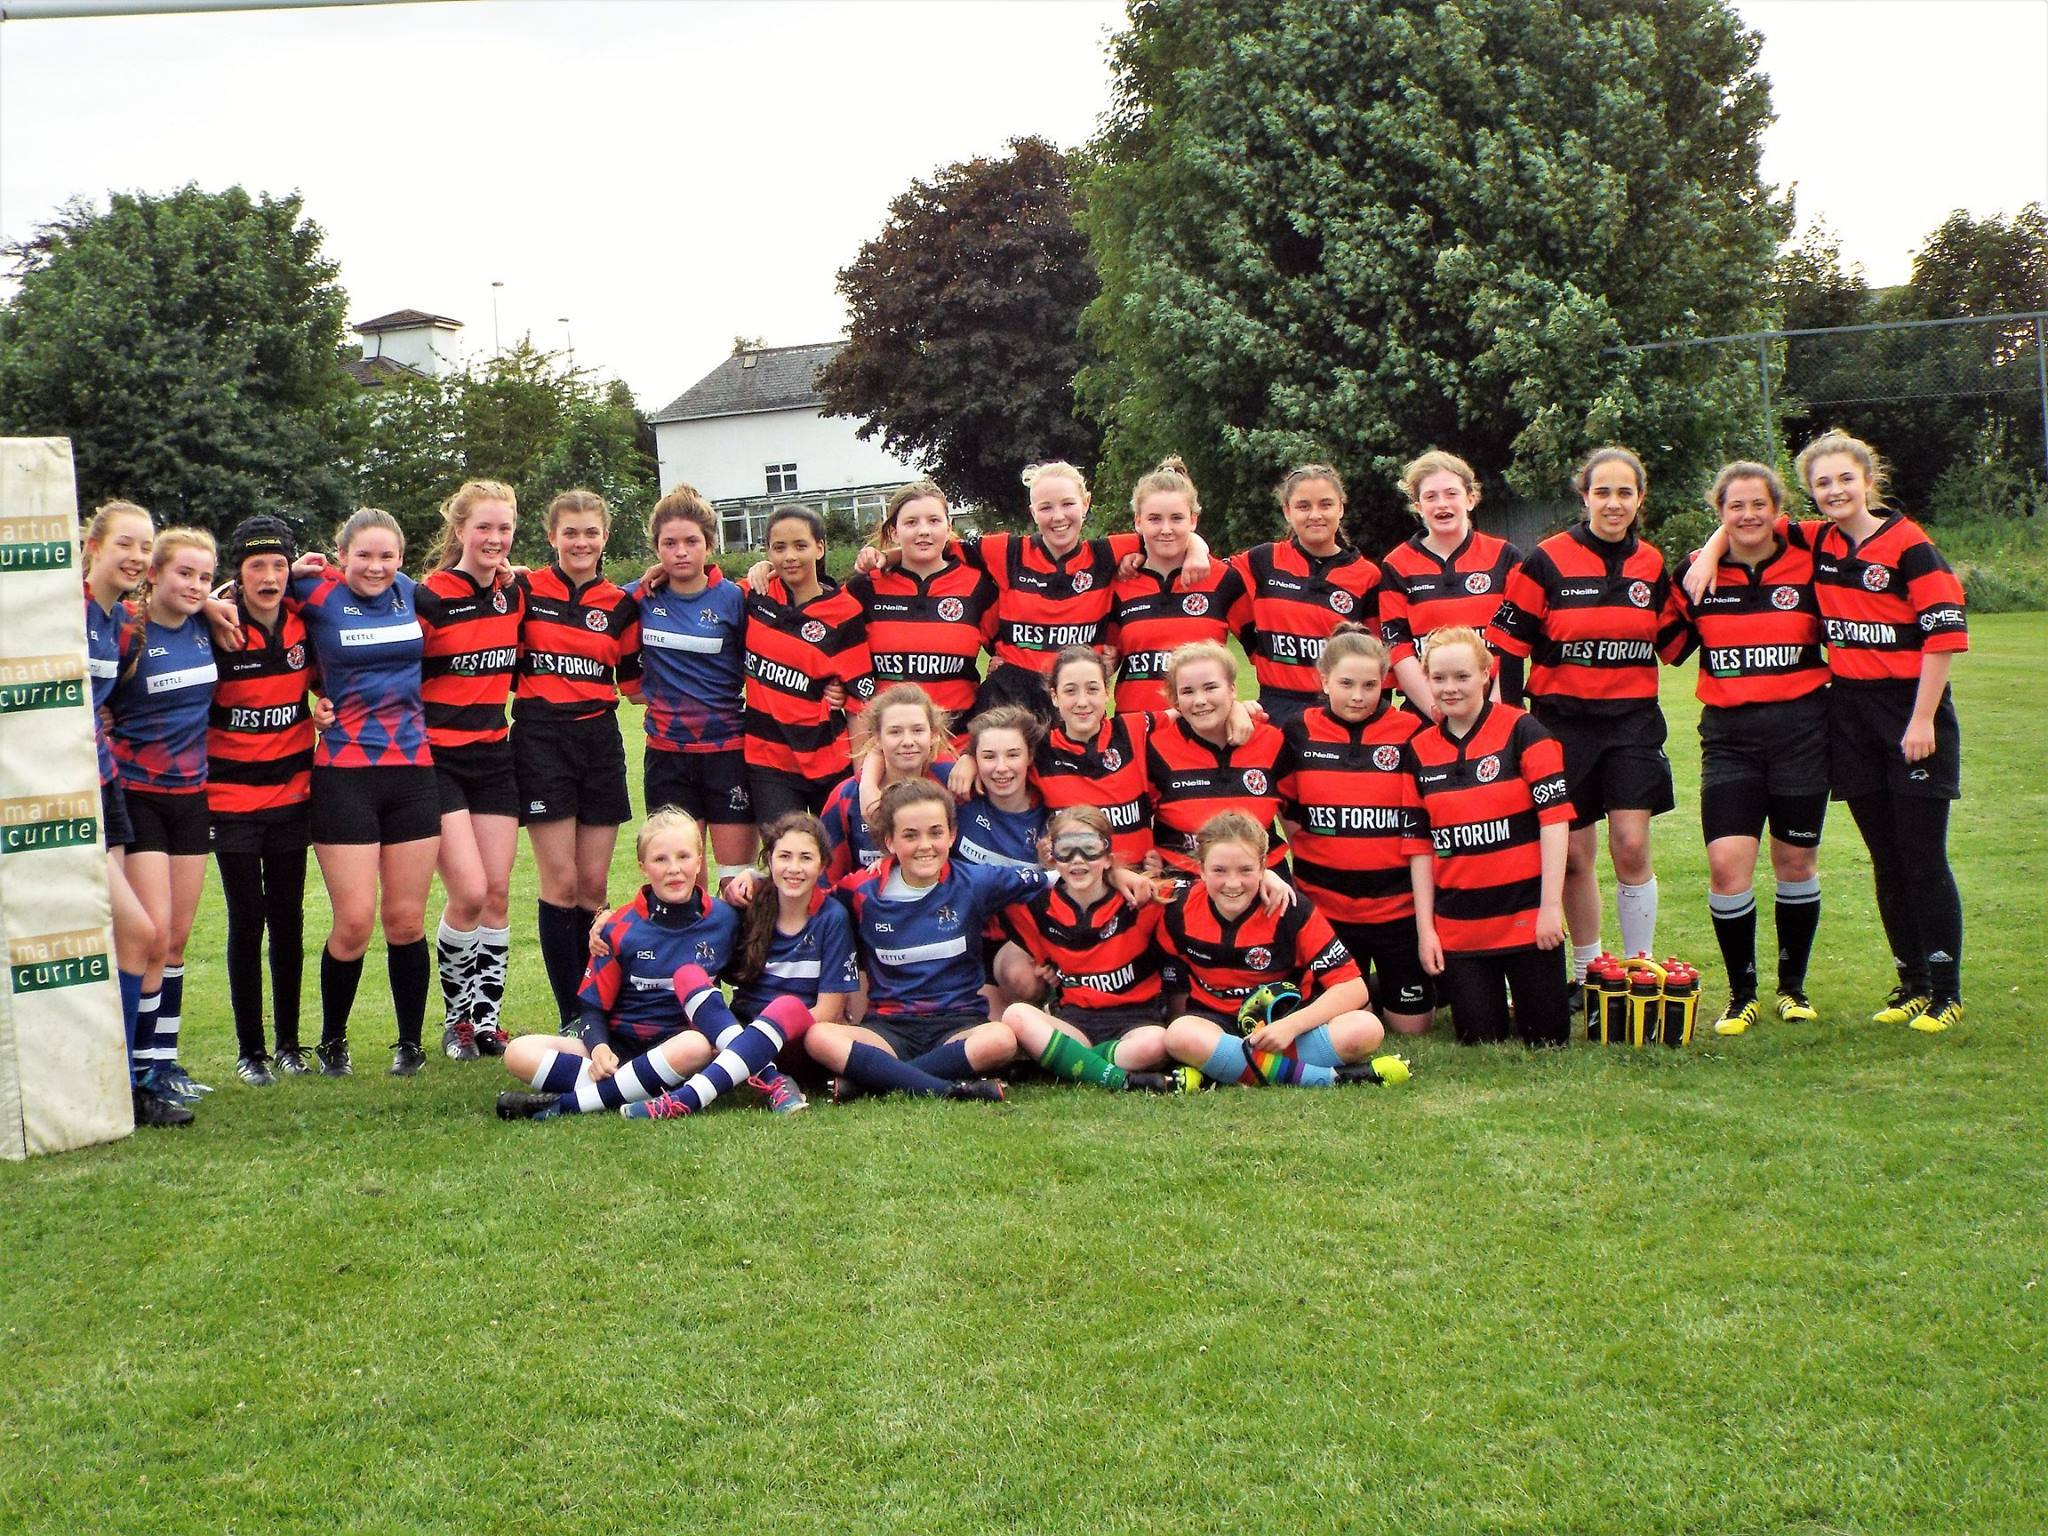 The Dundee Rugby and Howe Harlequins teams after their inaugural match this week.